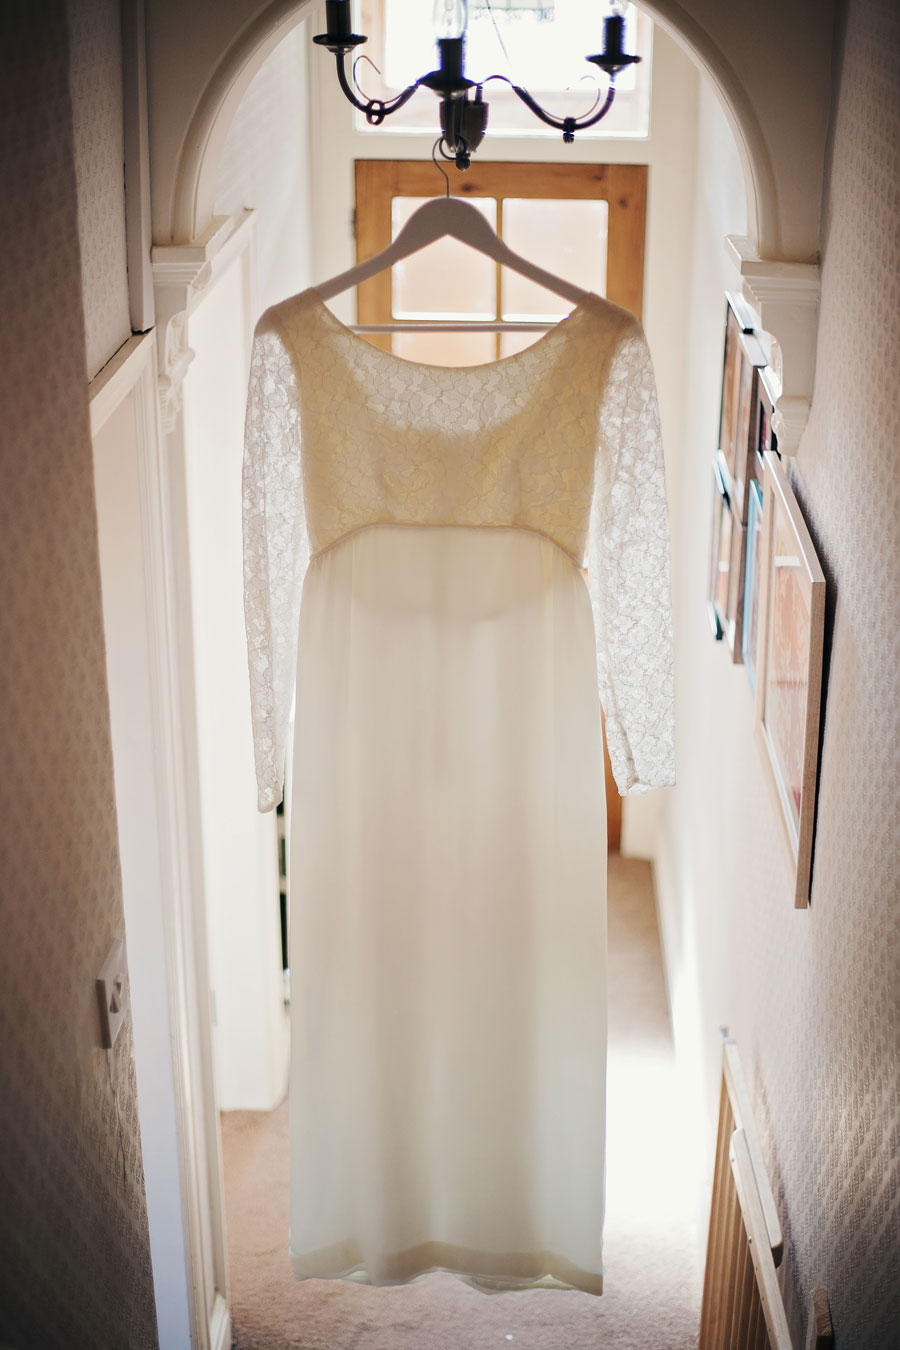 bride's dress hanging in hallway - vintage wedding photography in lancashire